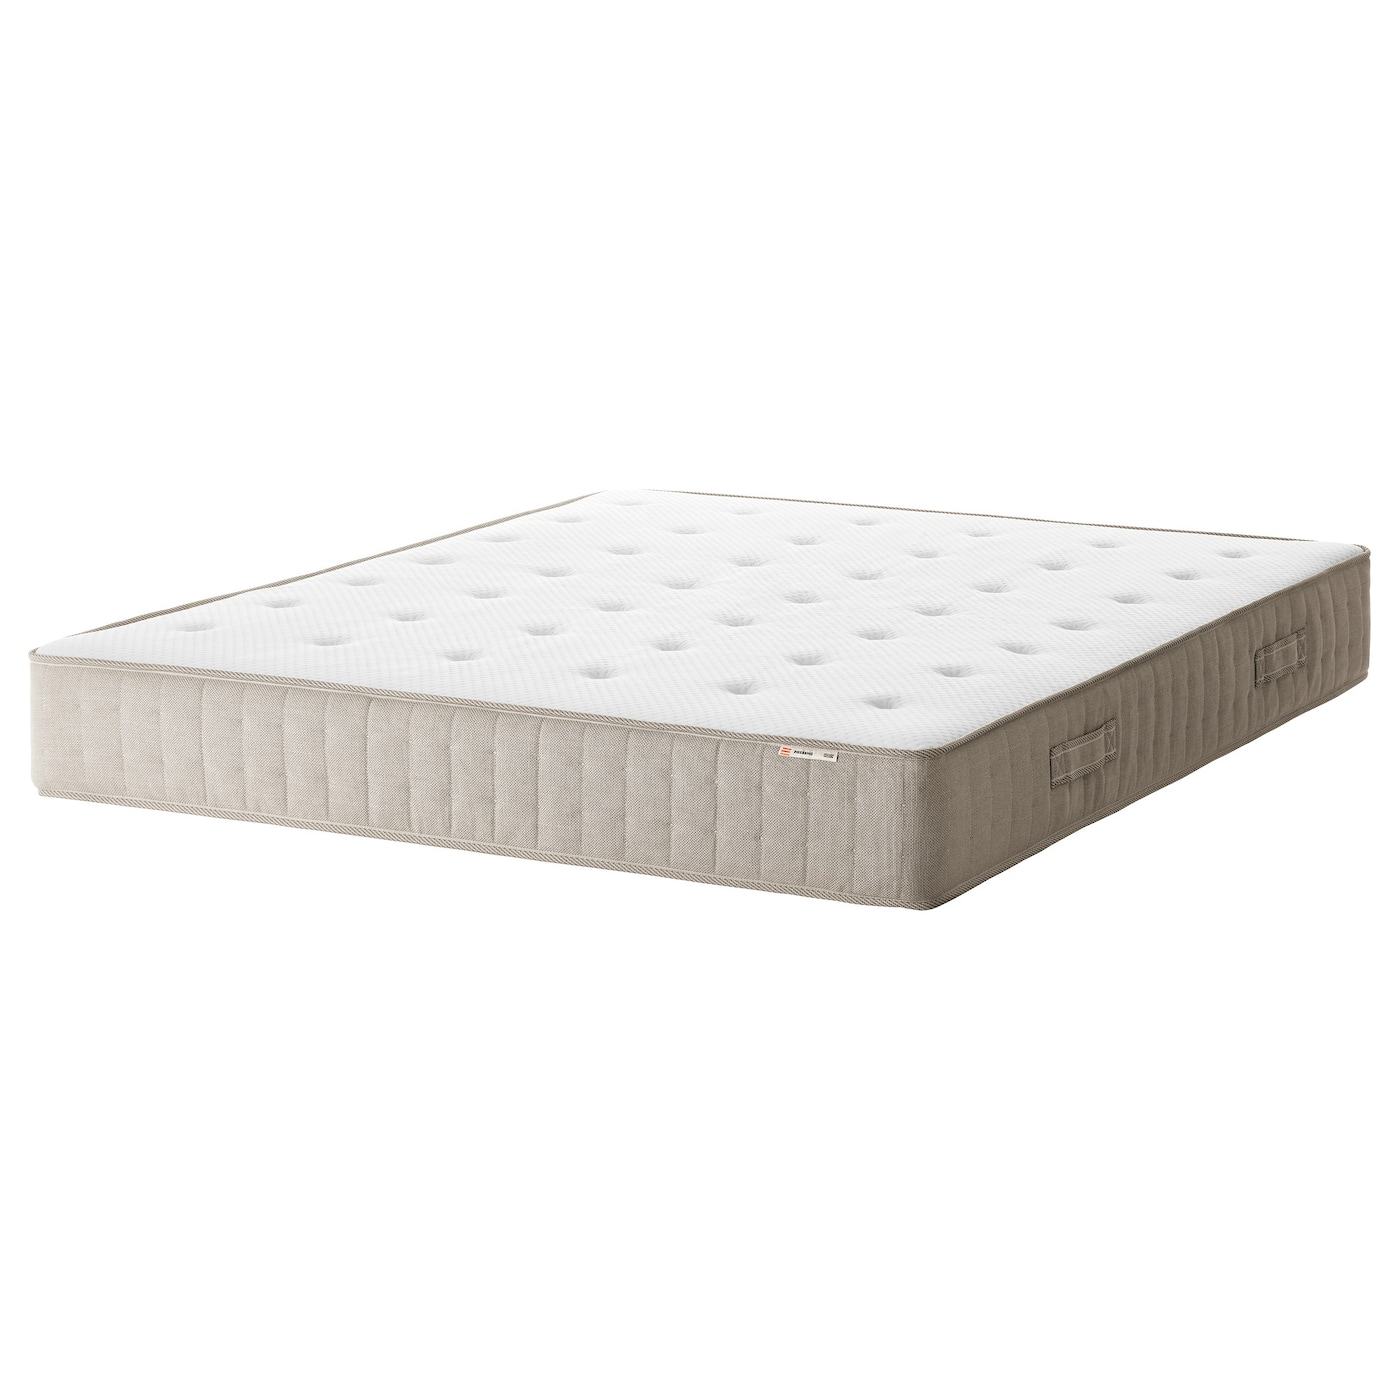 ikea hesseng pocket sprung mattress designed to be used on one side only u2013 no need